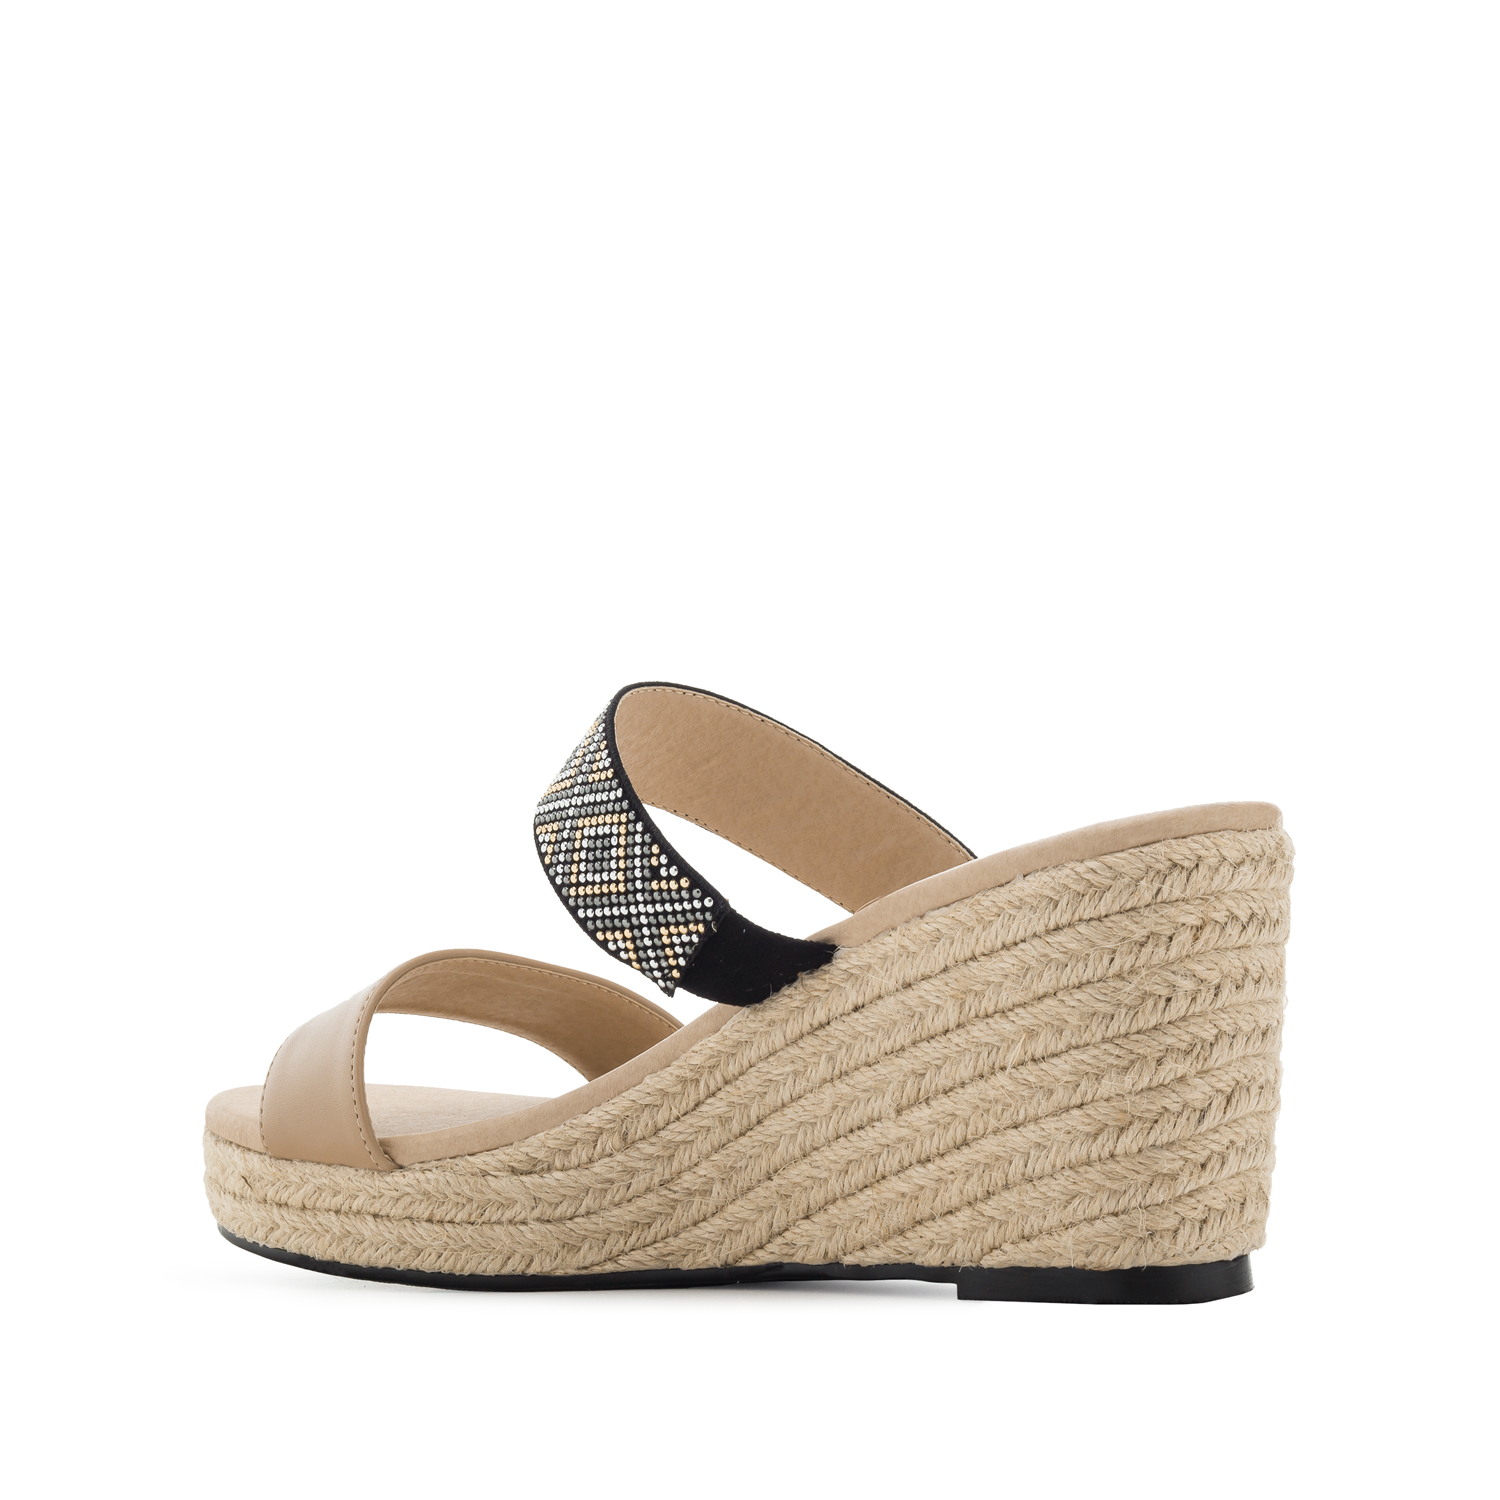 Low-wedges in Cream faux Leather